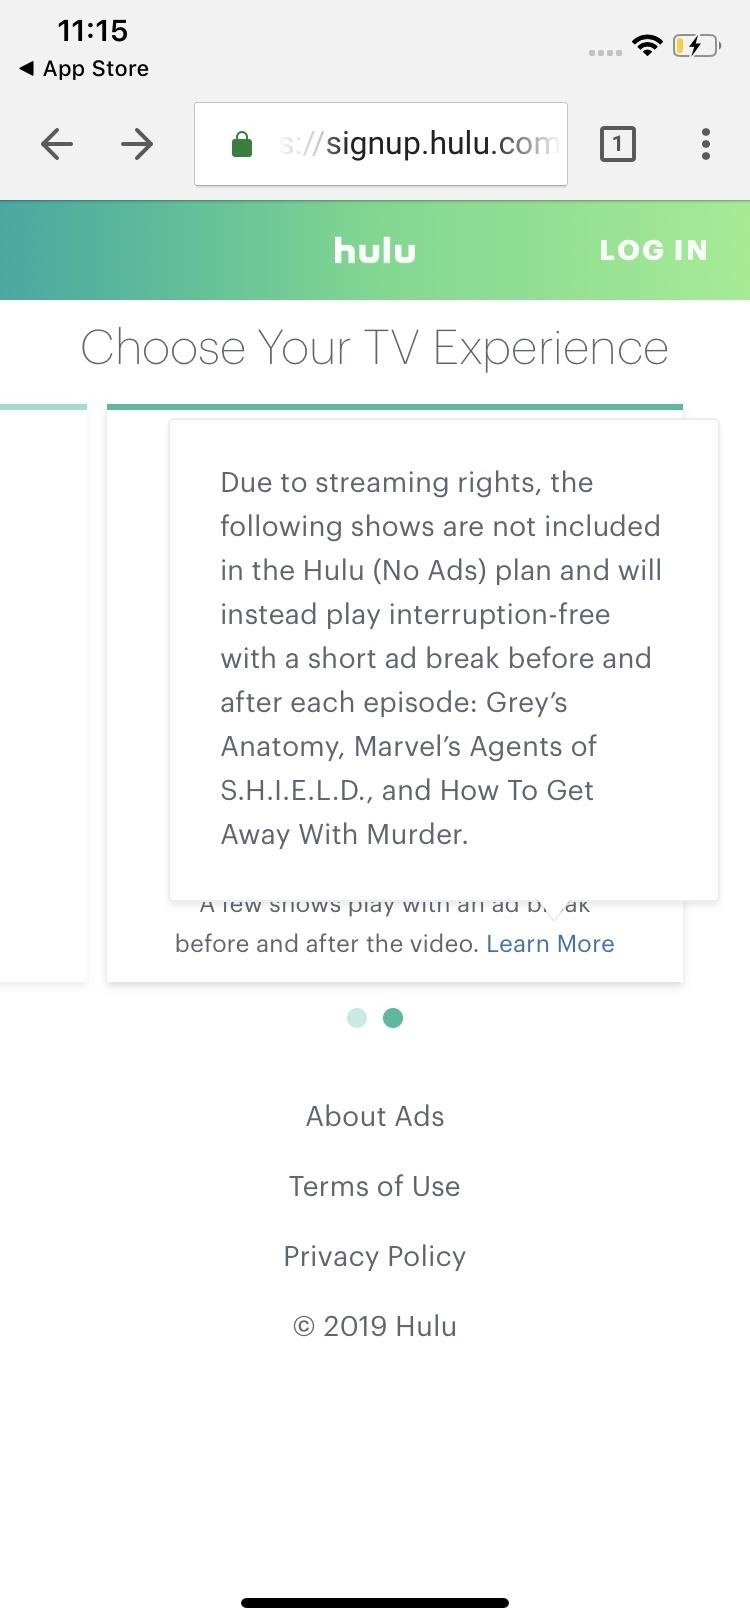 Save on Hulu by using the choose a plan suitable for you